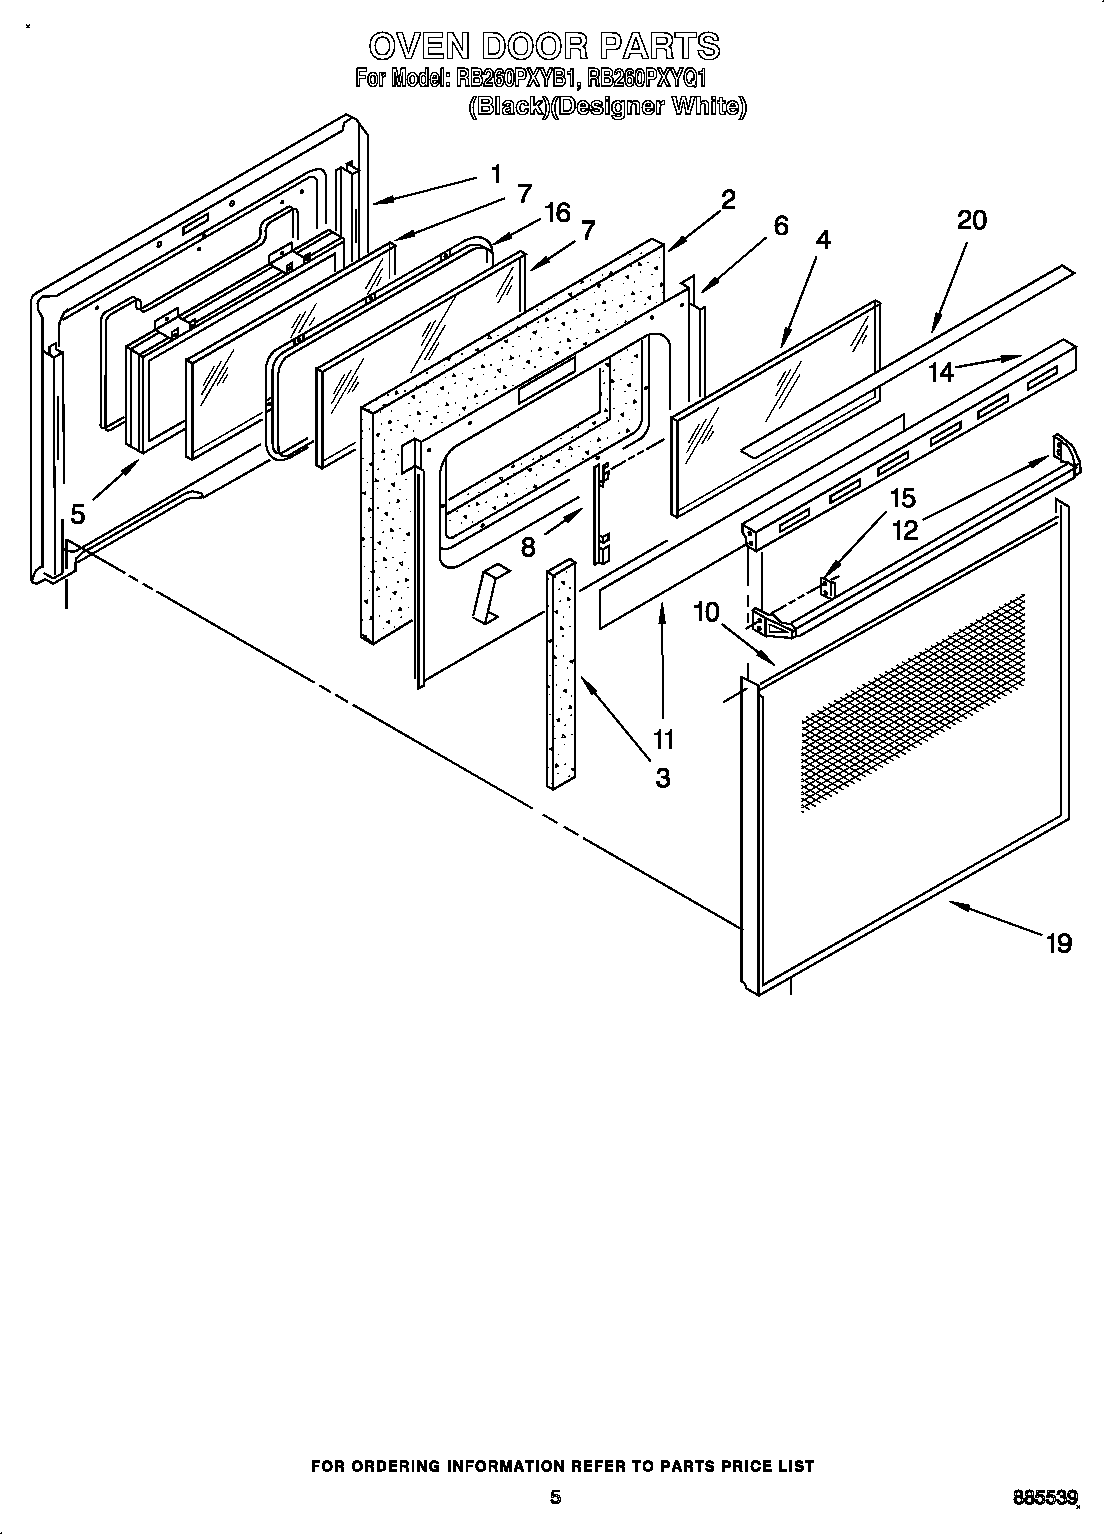 Oven Door Schematic Wiring Diagrams Electric Stove Library Rh 71 Codingcommunity De Microwave Diagram